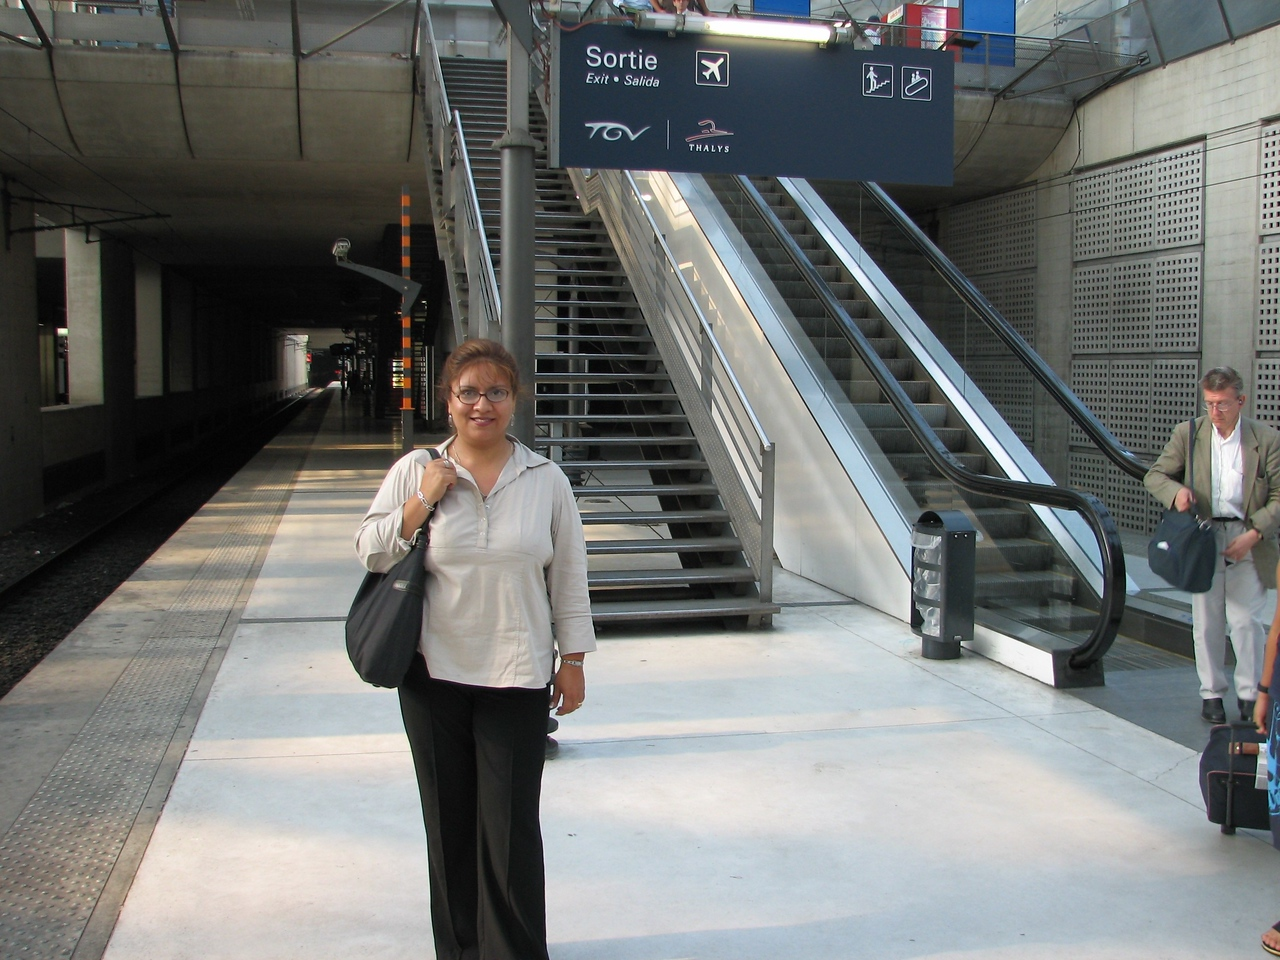 I am too happy to finally be in Paris.  Posing at the train station near CDG (airport).<br /> <br /> Yo tambien estoy feliz de al fin haber arrivado en Paris.  Posando en la estacion de tren cerca de CDG (aeropuerto)